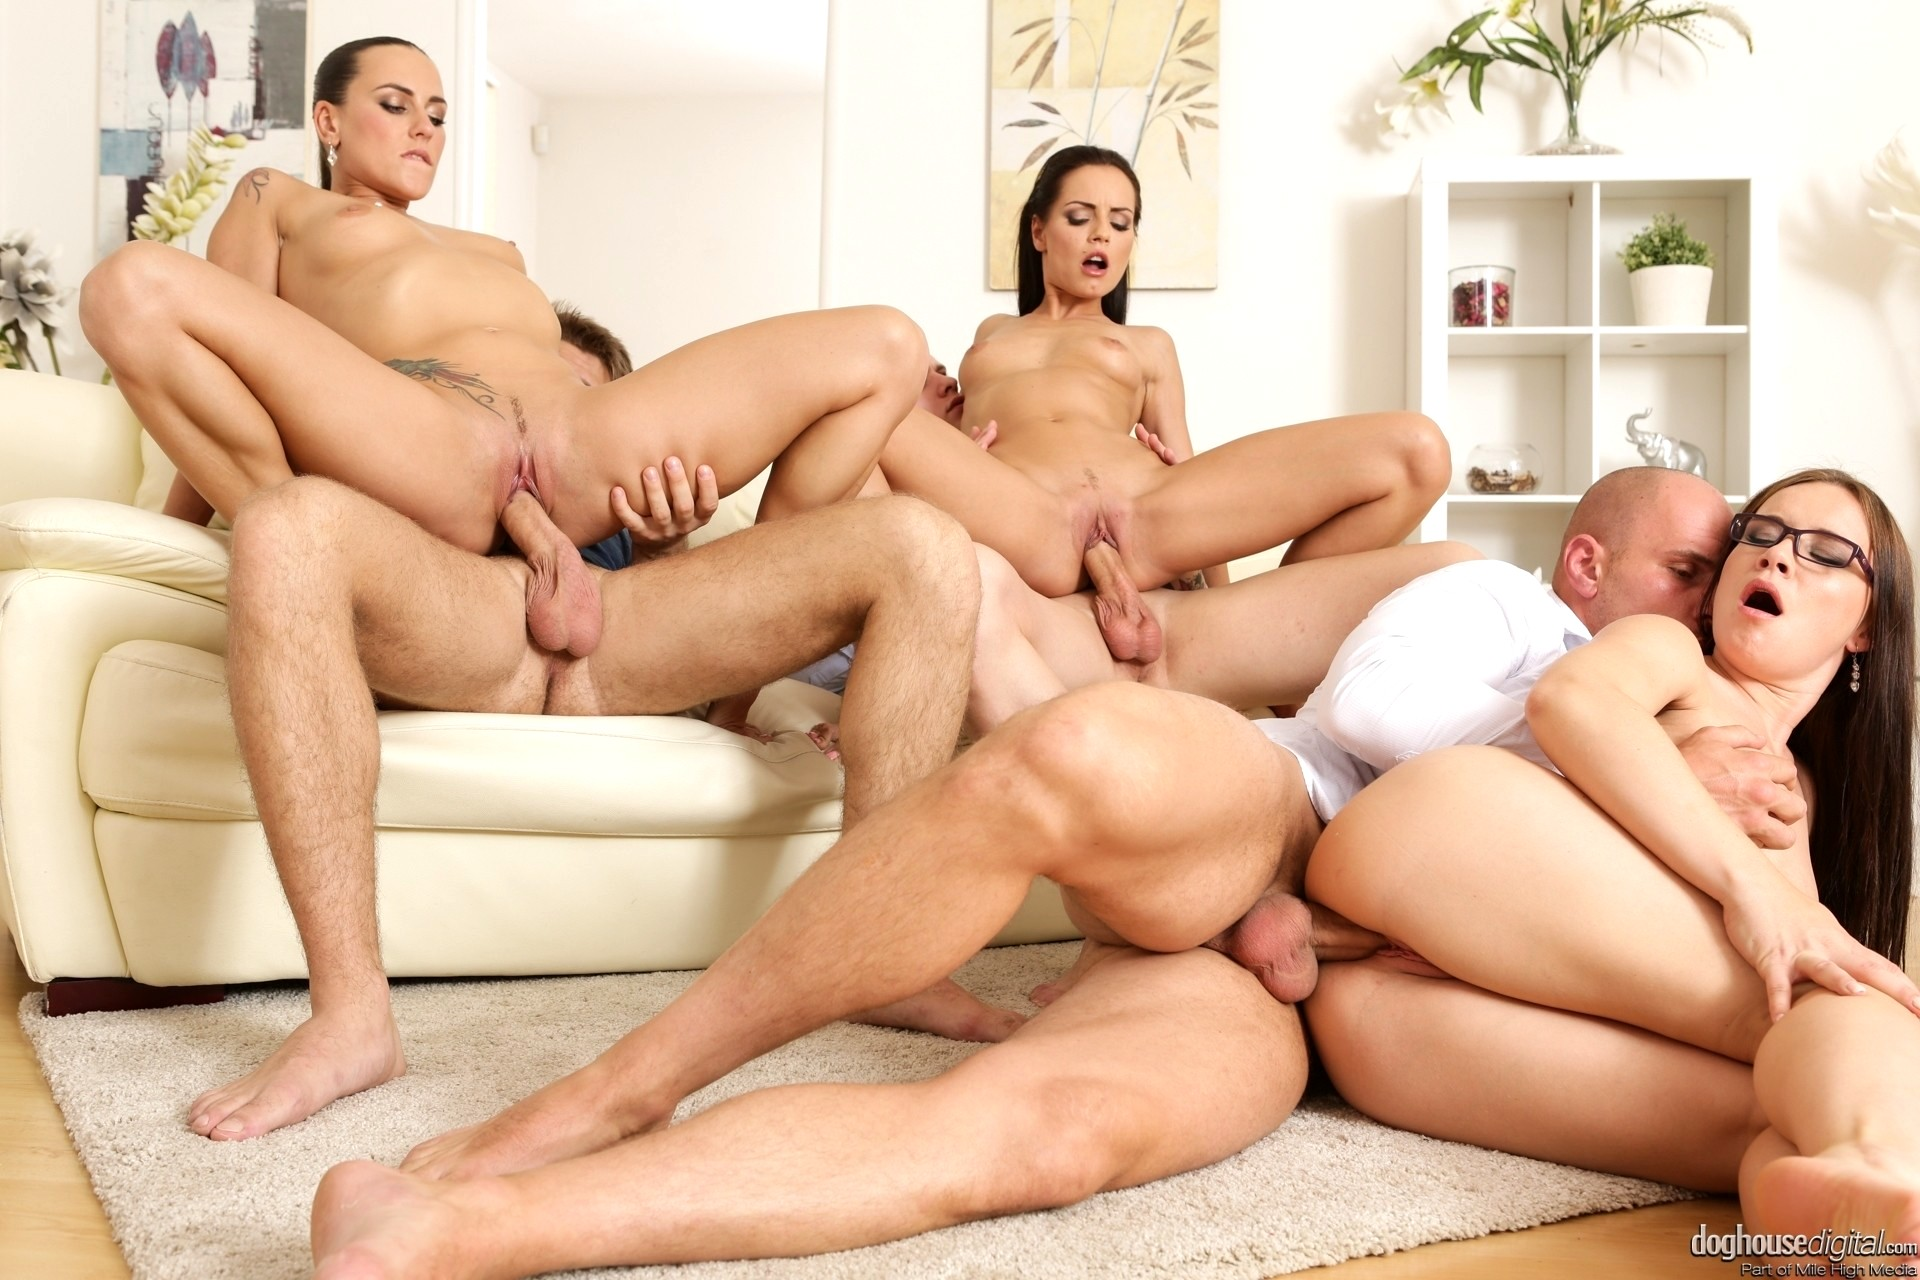 group-sex-free-videos